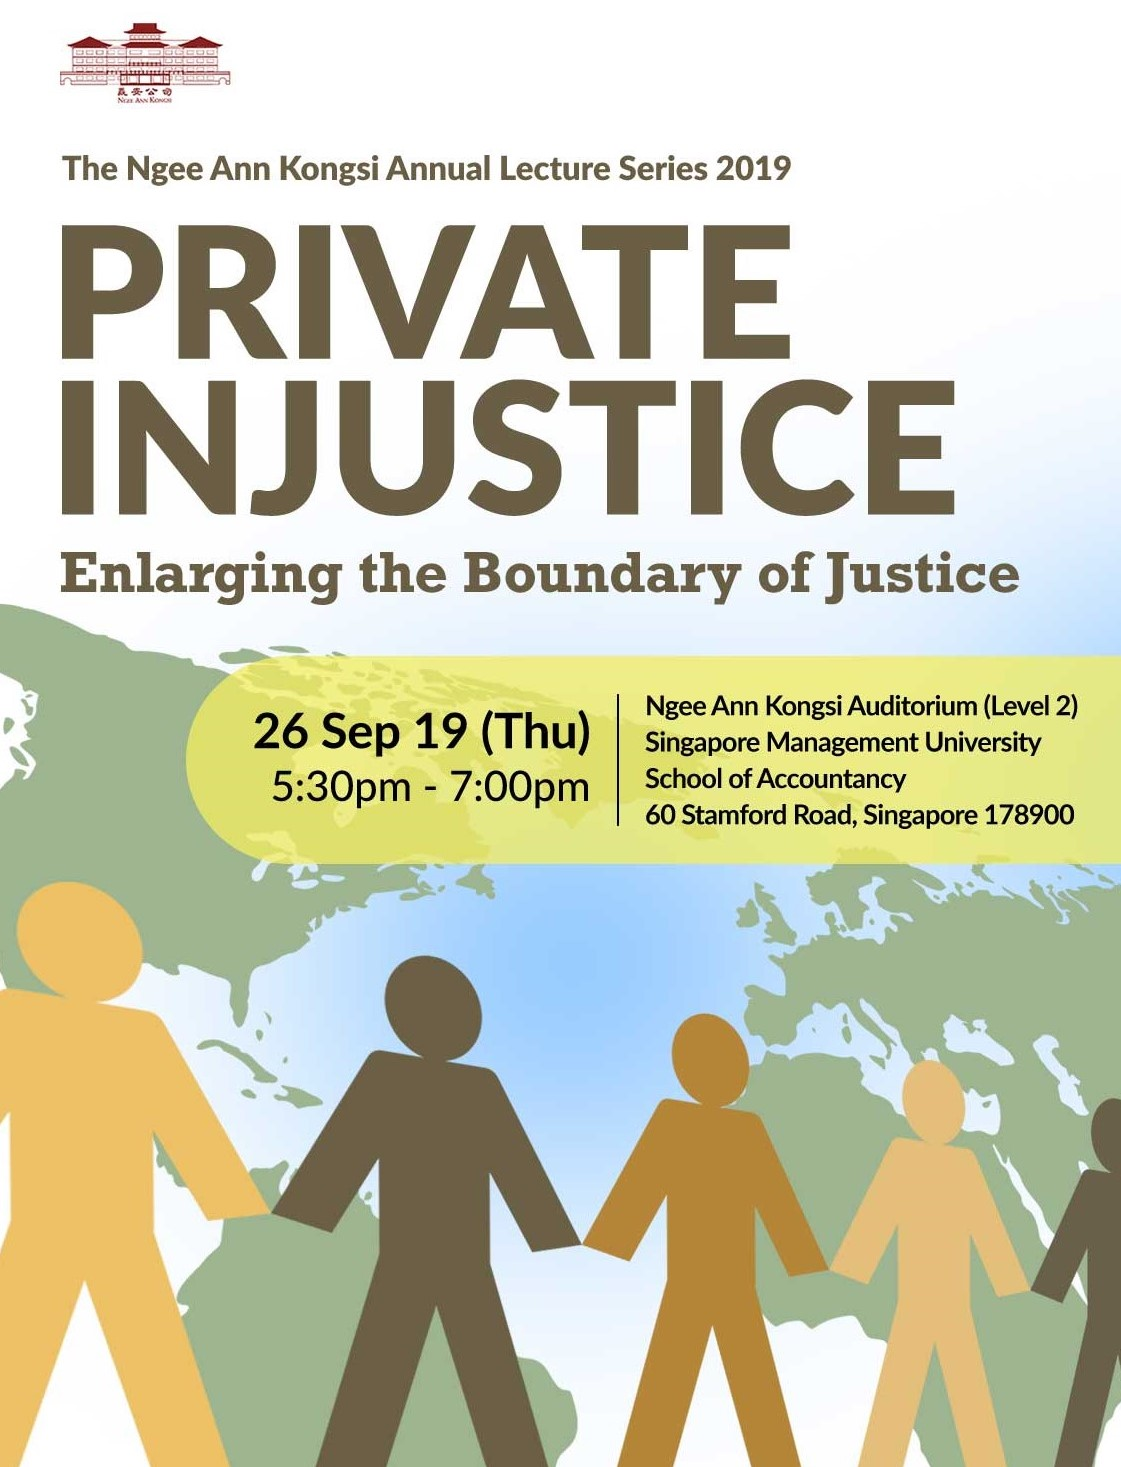 The Ngee Ann Kongsi Annual Lecture Series 2019: Private Injustice: Enlarging the Boundary of Justice